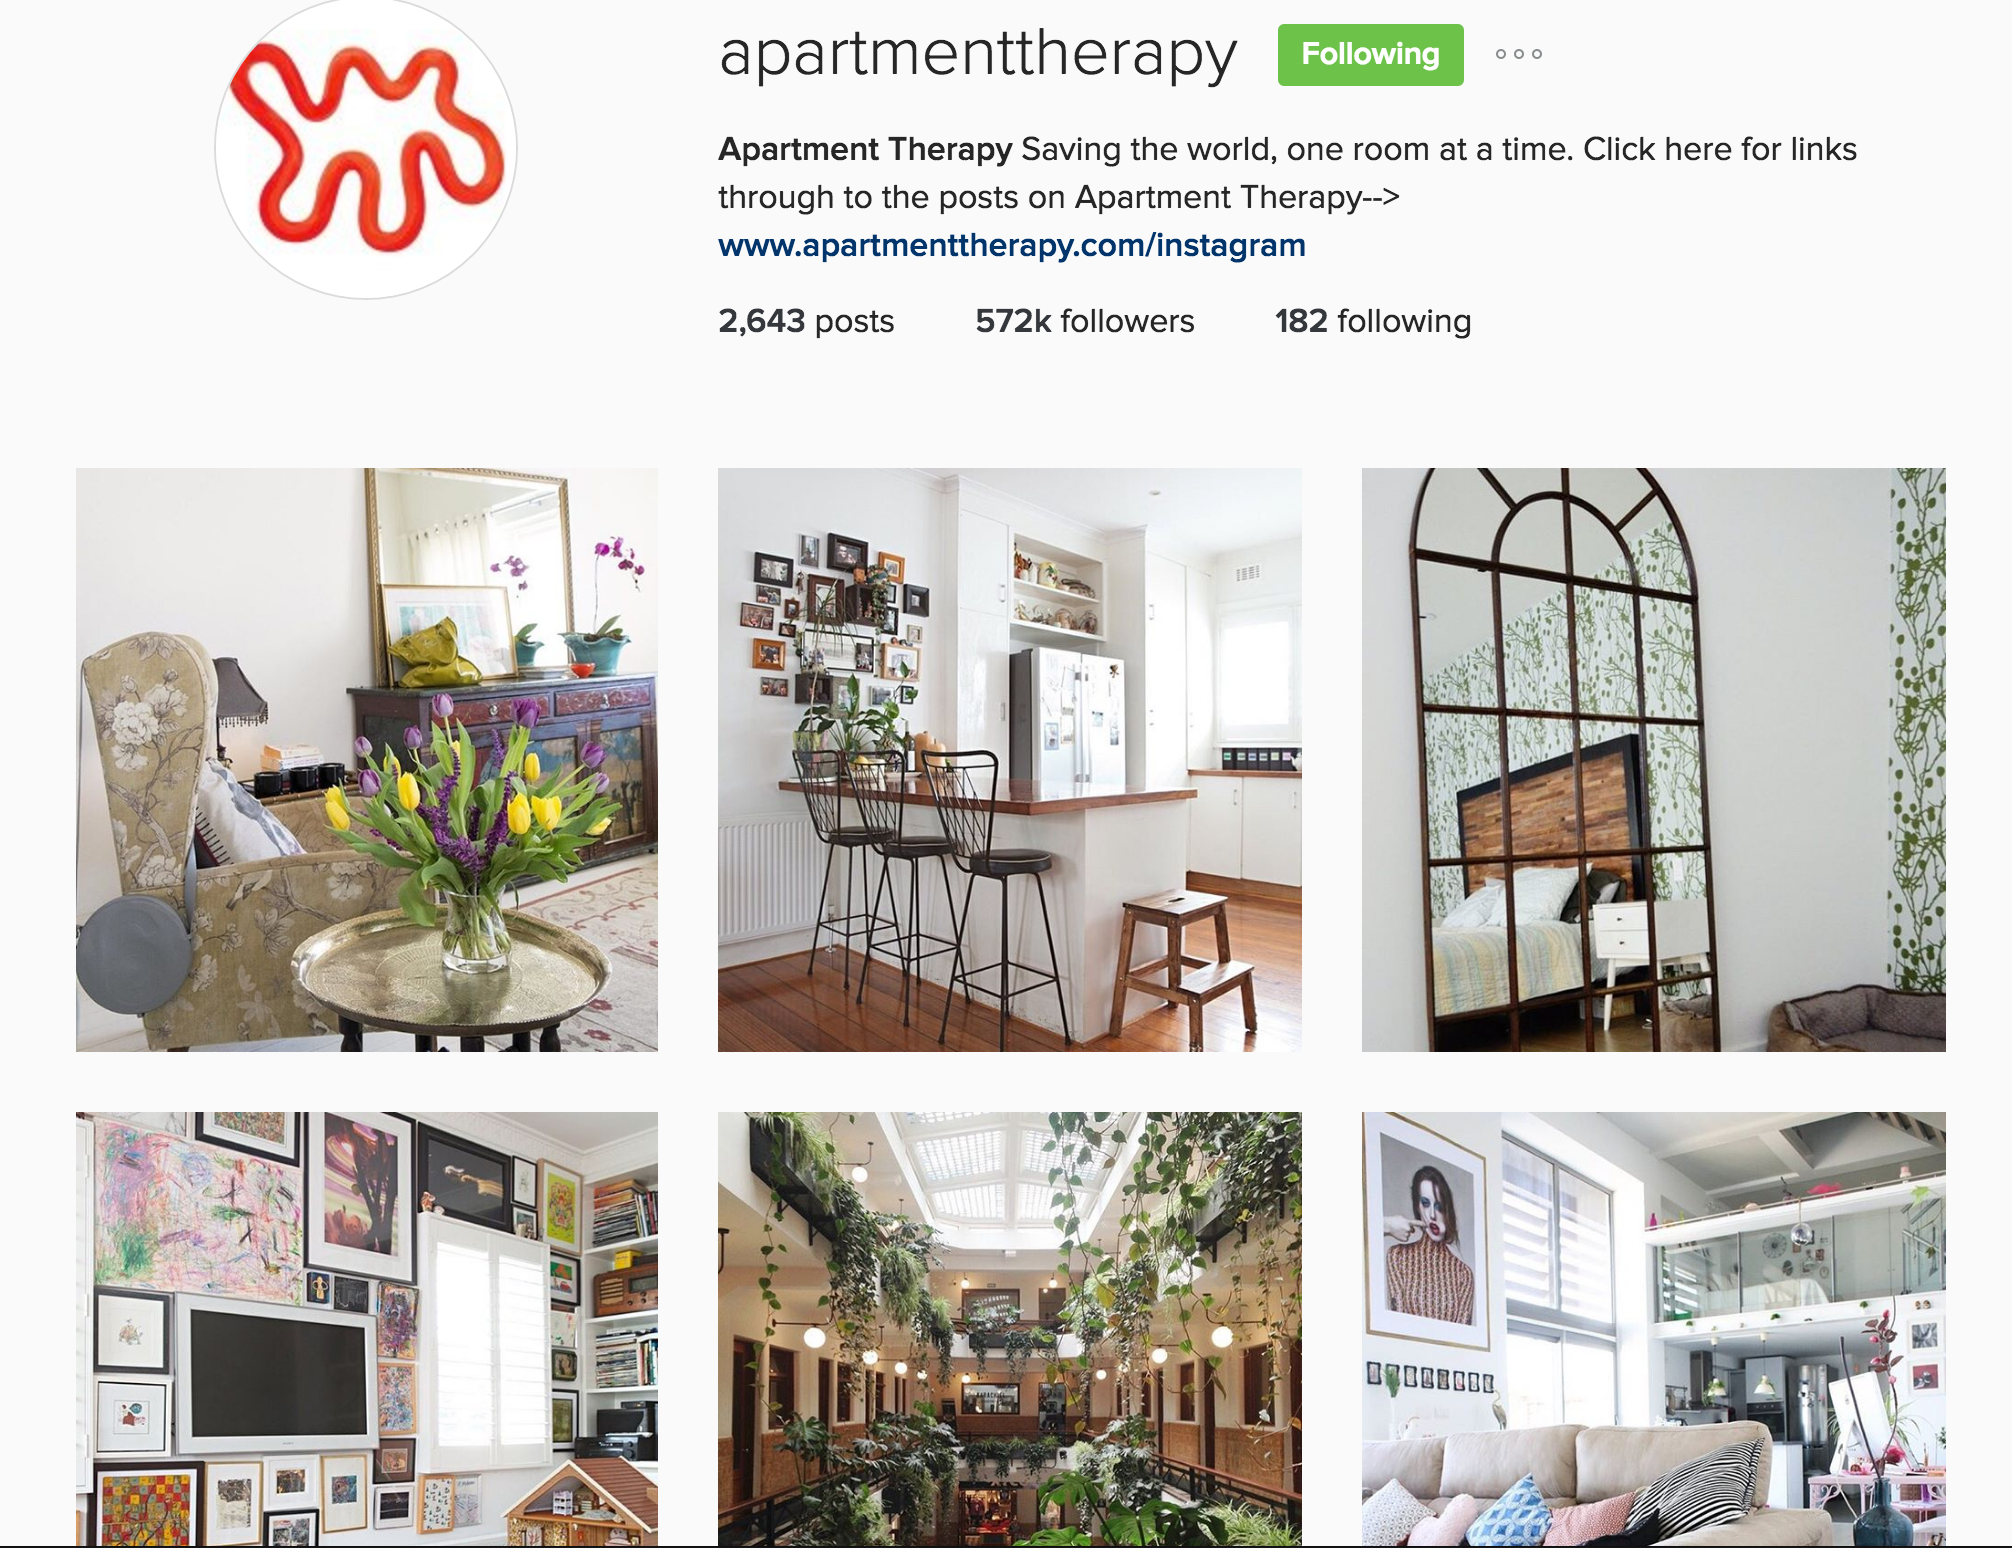 @apartmenttherapy